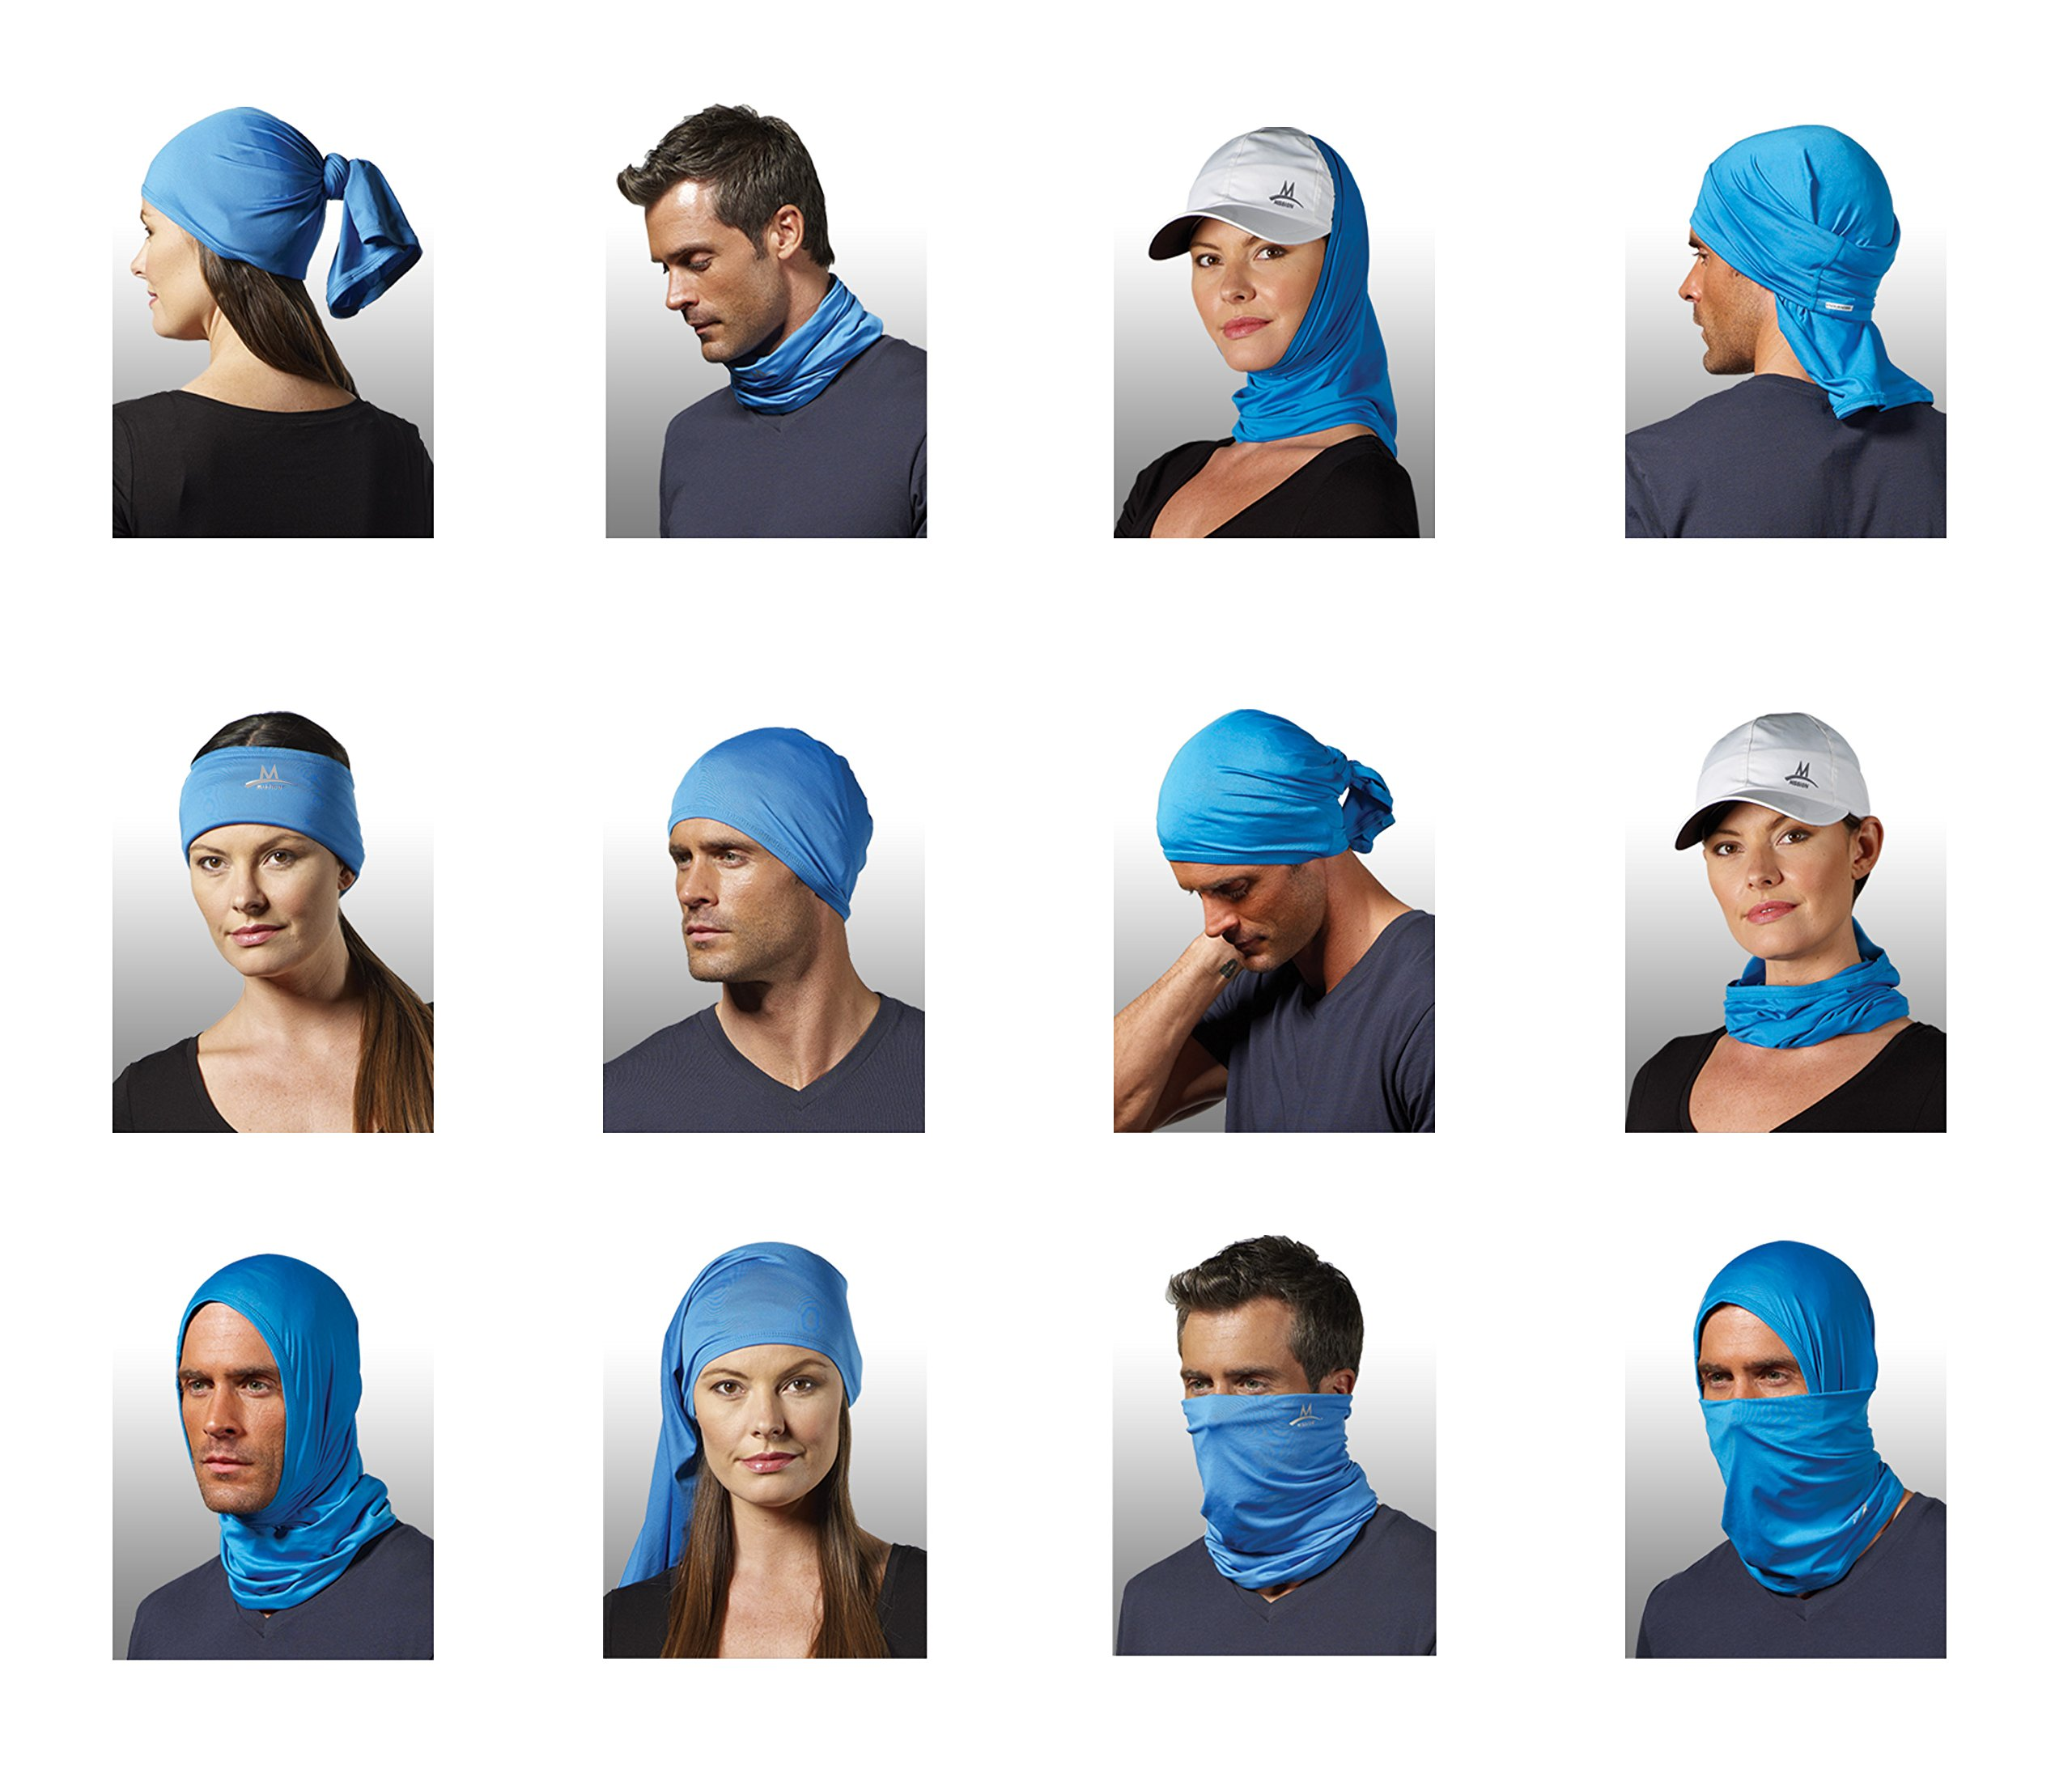 Mission Multi-Cool 12 in 1 Multifunctional Gaiter and Headwear Blue by MISSION